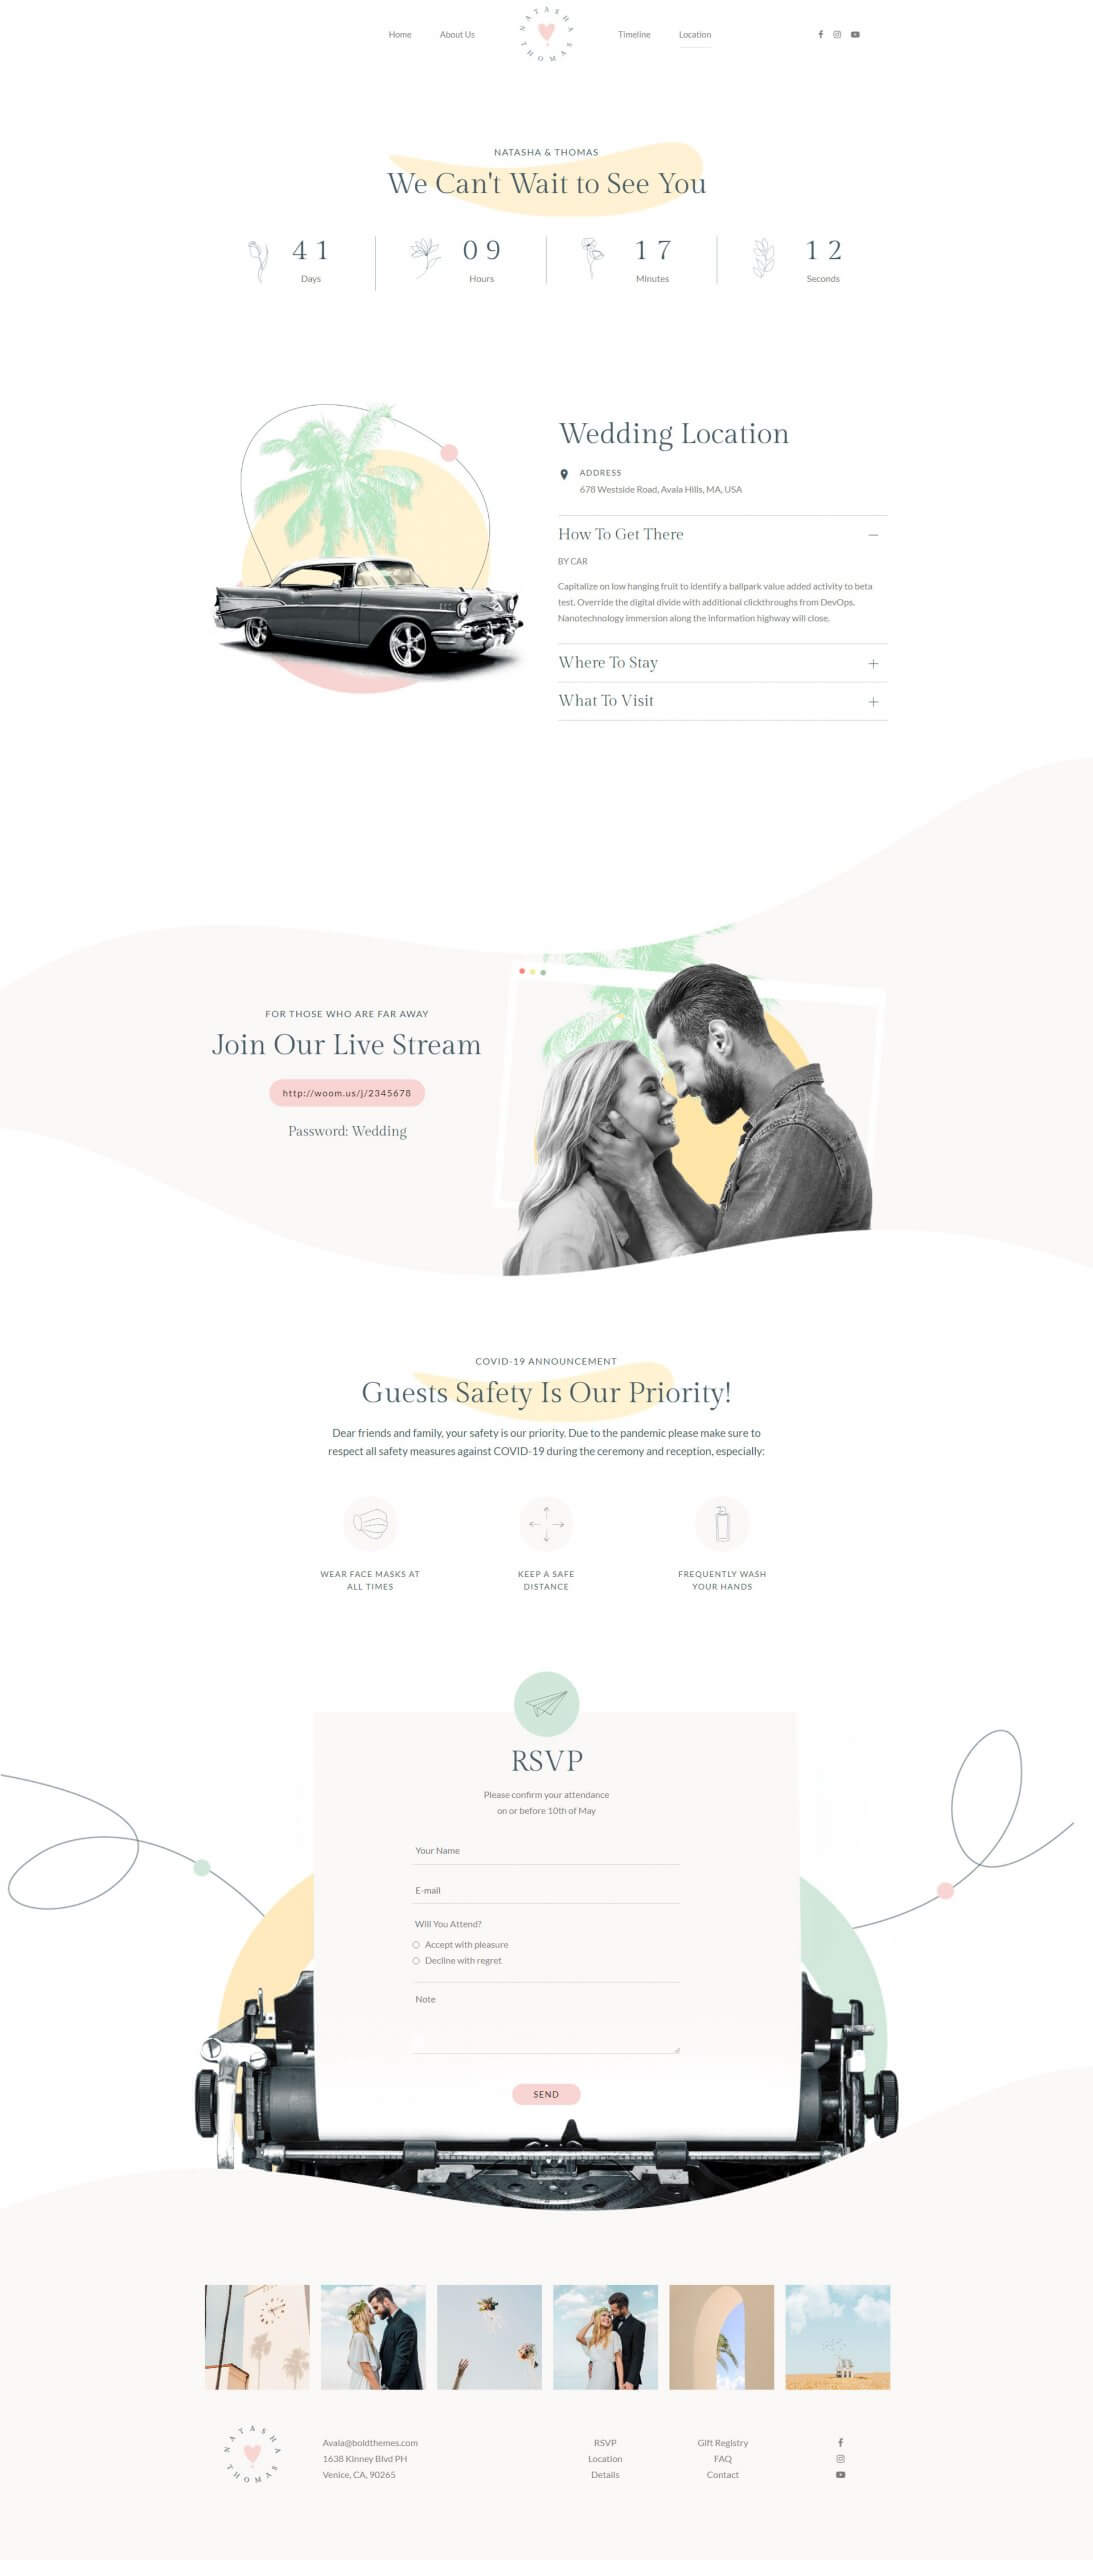 http://avala.bold-themes.com/wp-content/uploads/2021/02/Summer-Location-Couples-scaled.jpg